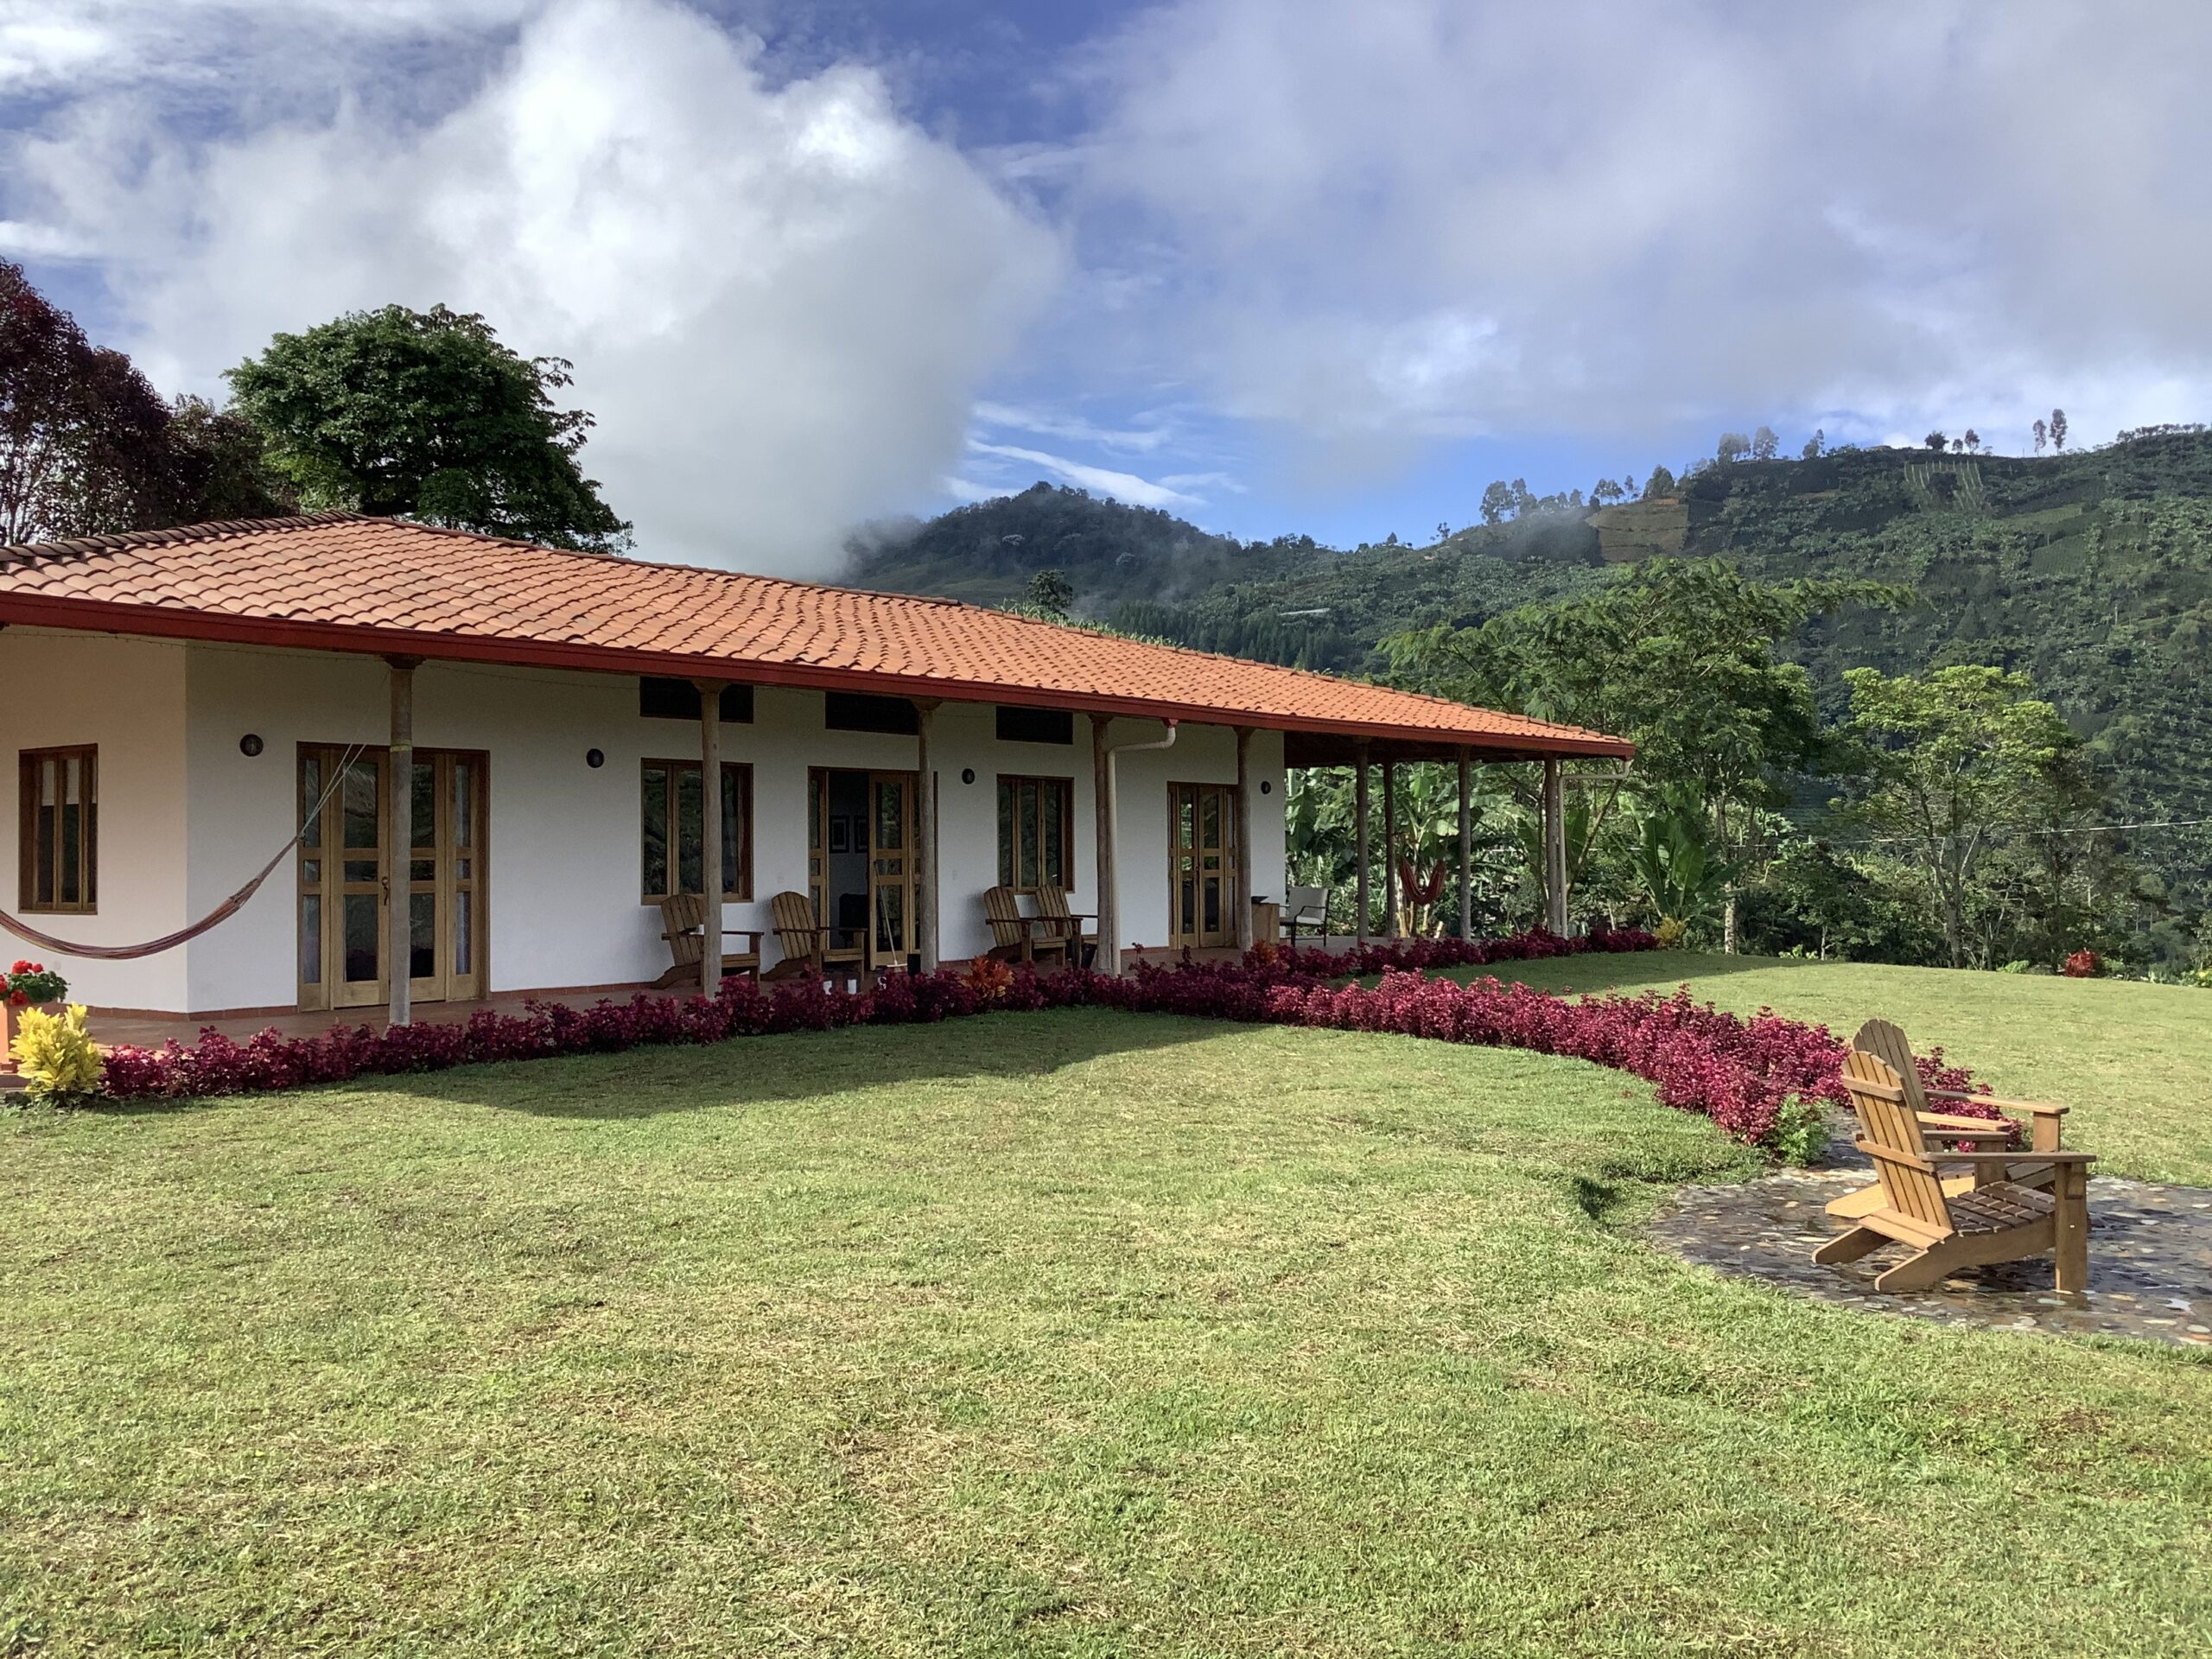 The front of Finca Mariposa - guest house for rent